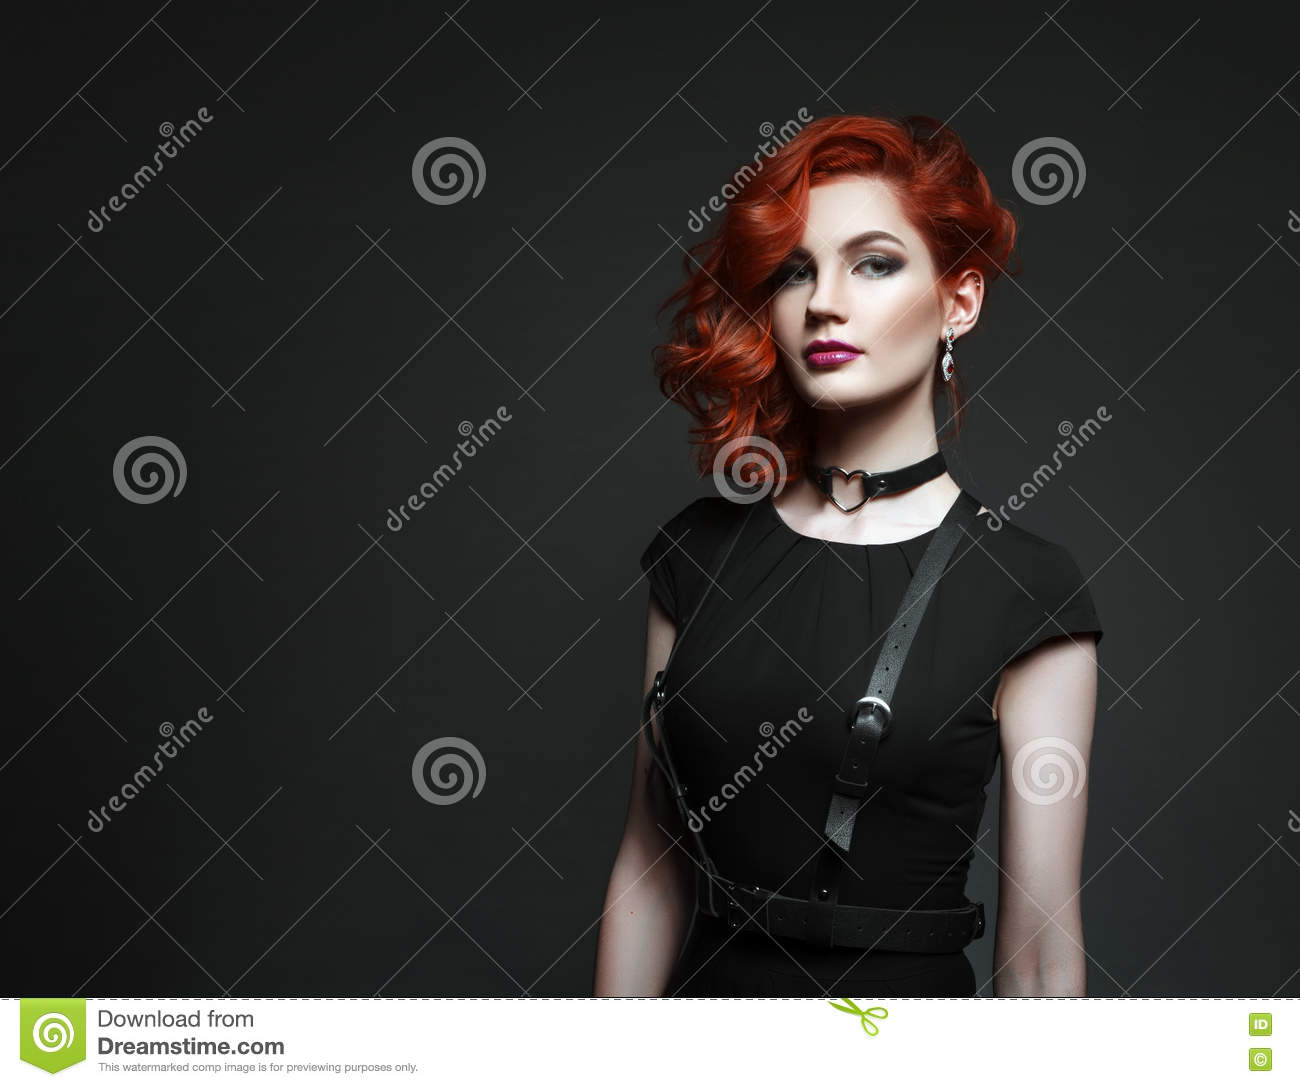 Black dress hairstyle - Beautiful Woman With Red Hair In A Black Dress Stock Photo